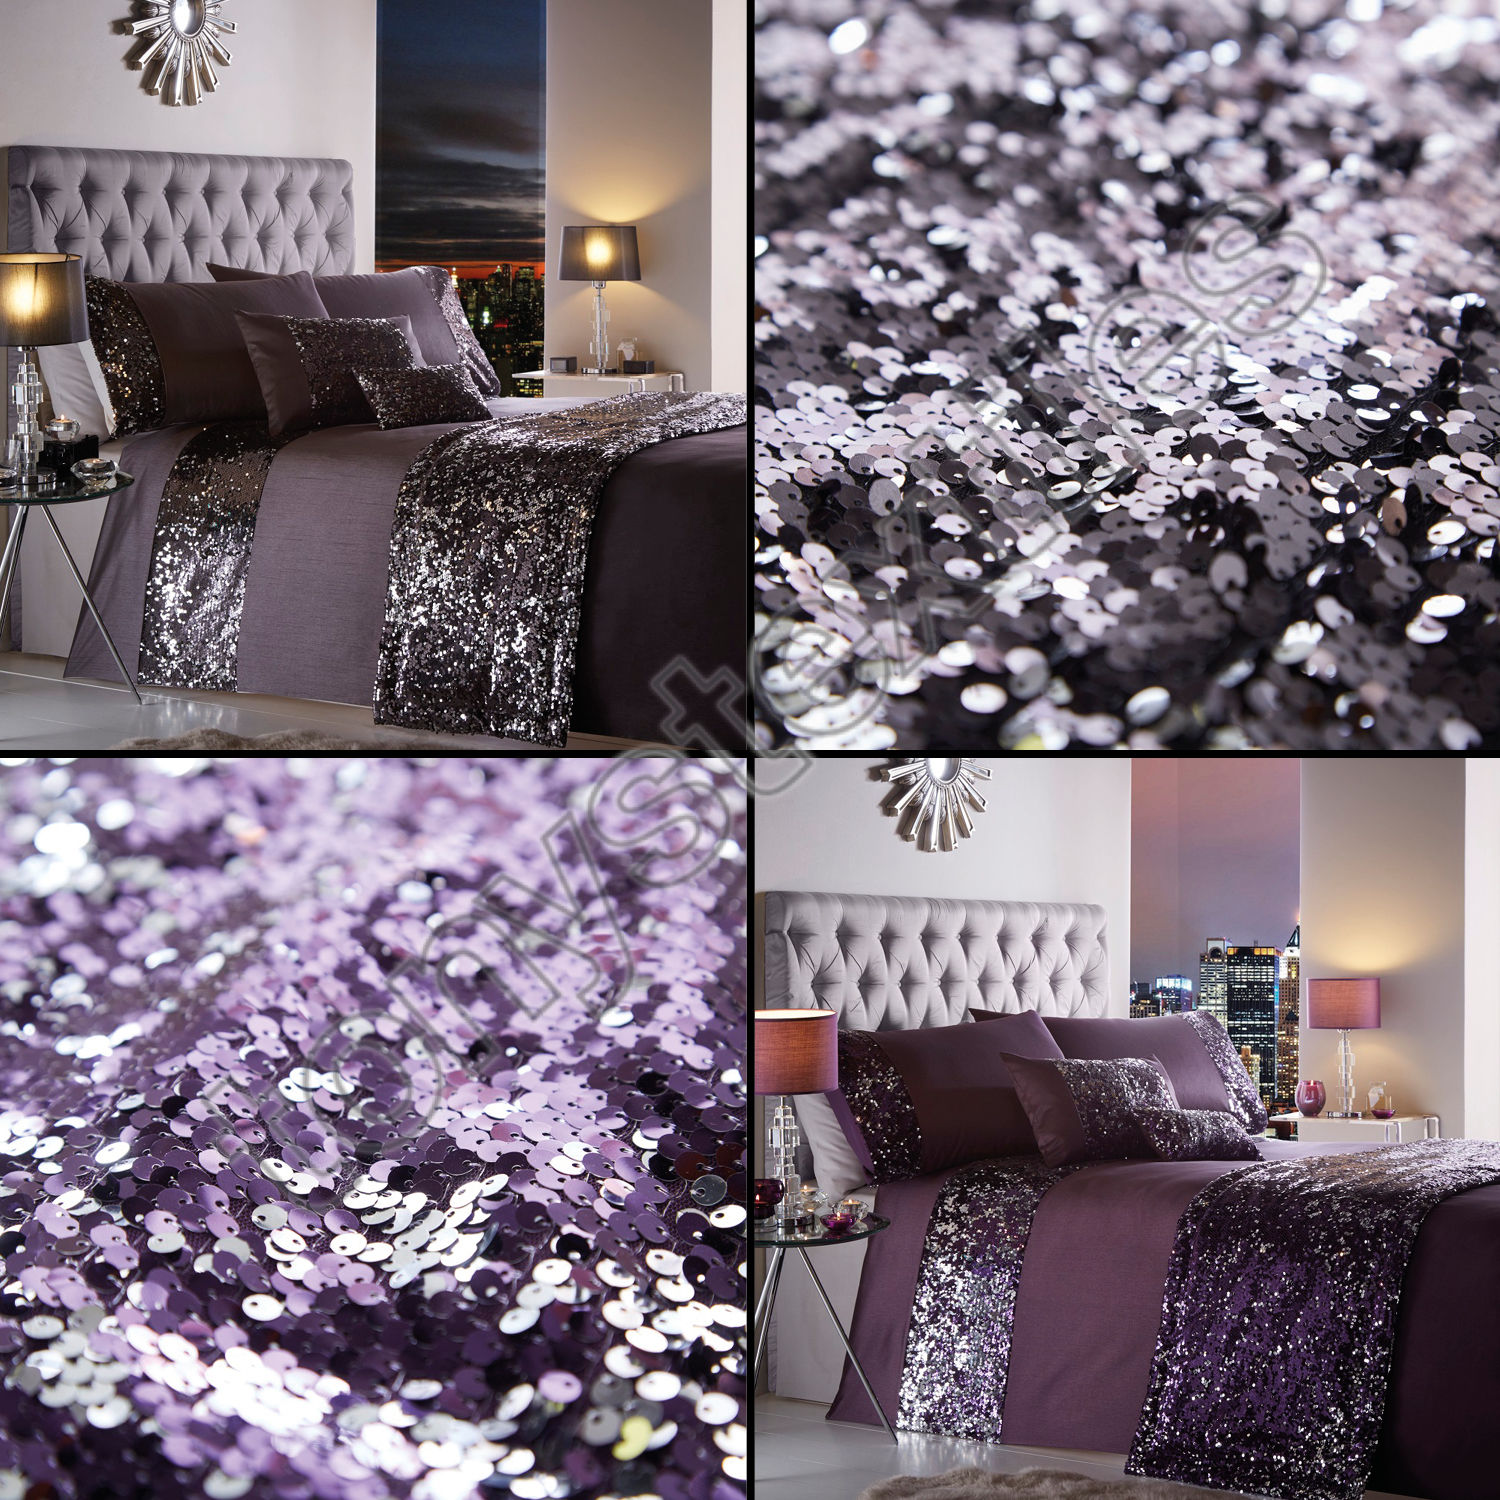 Portofino Dazzle Glitter Duvet Bedding Set With Sequins